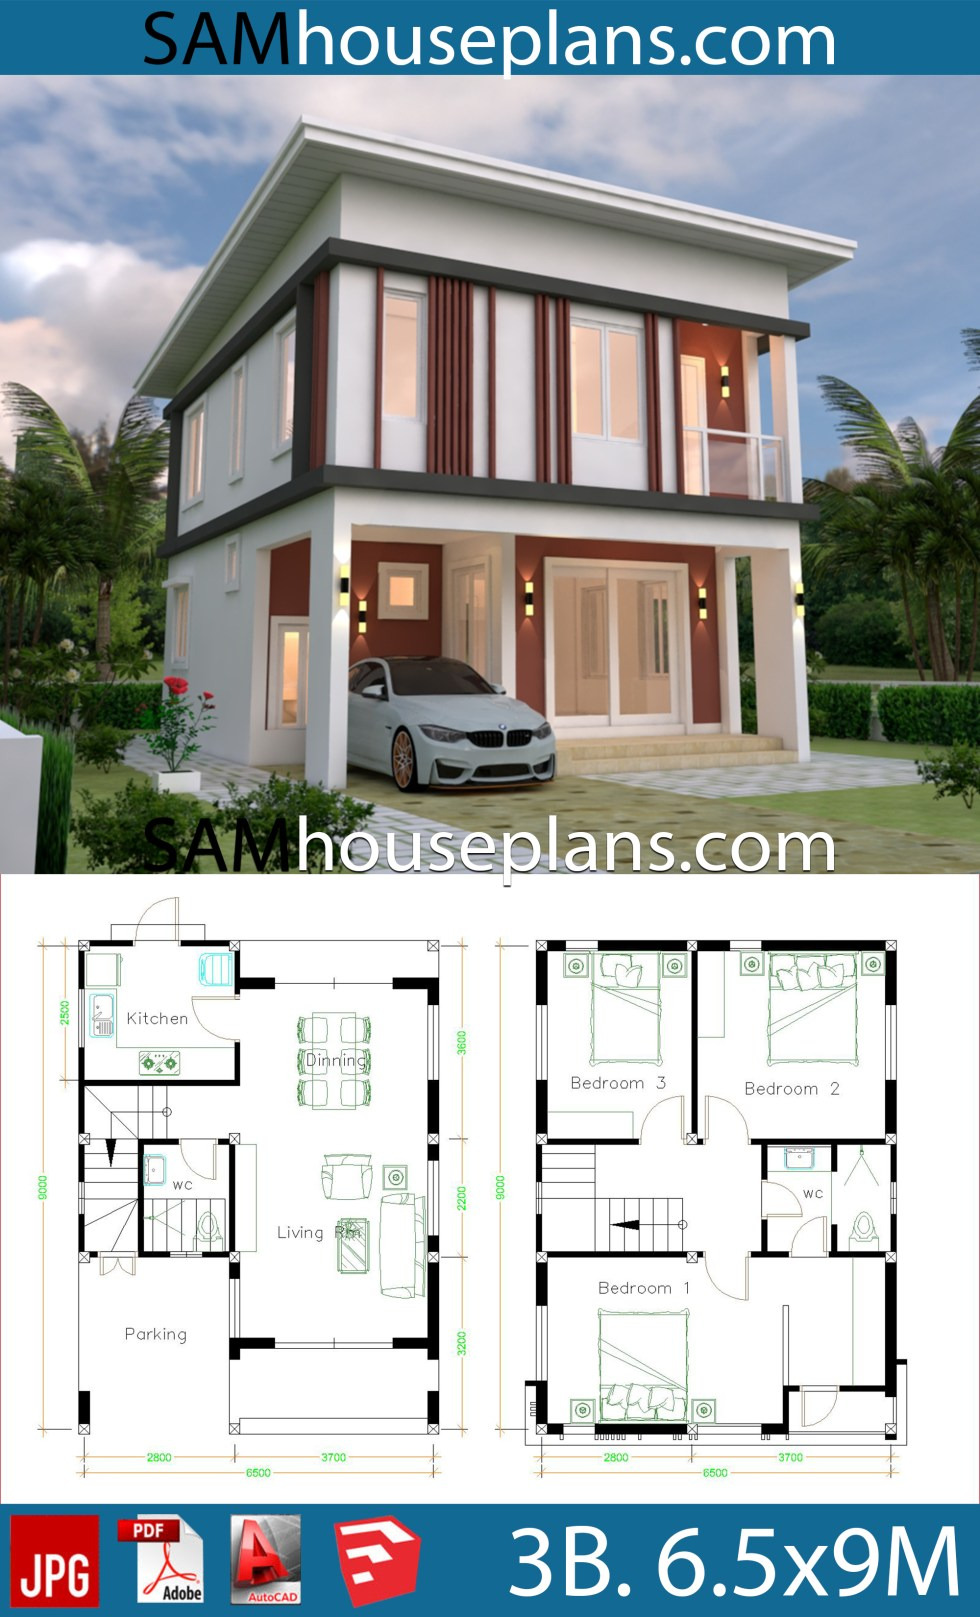 Flat Roof House Plans Design Fresh House Plans 6 6x9 with 3 Bedrooms Flat Roof